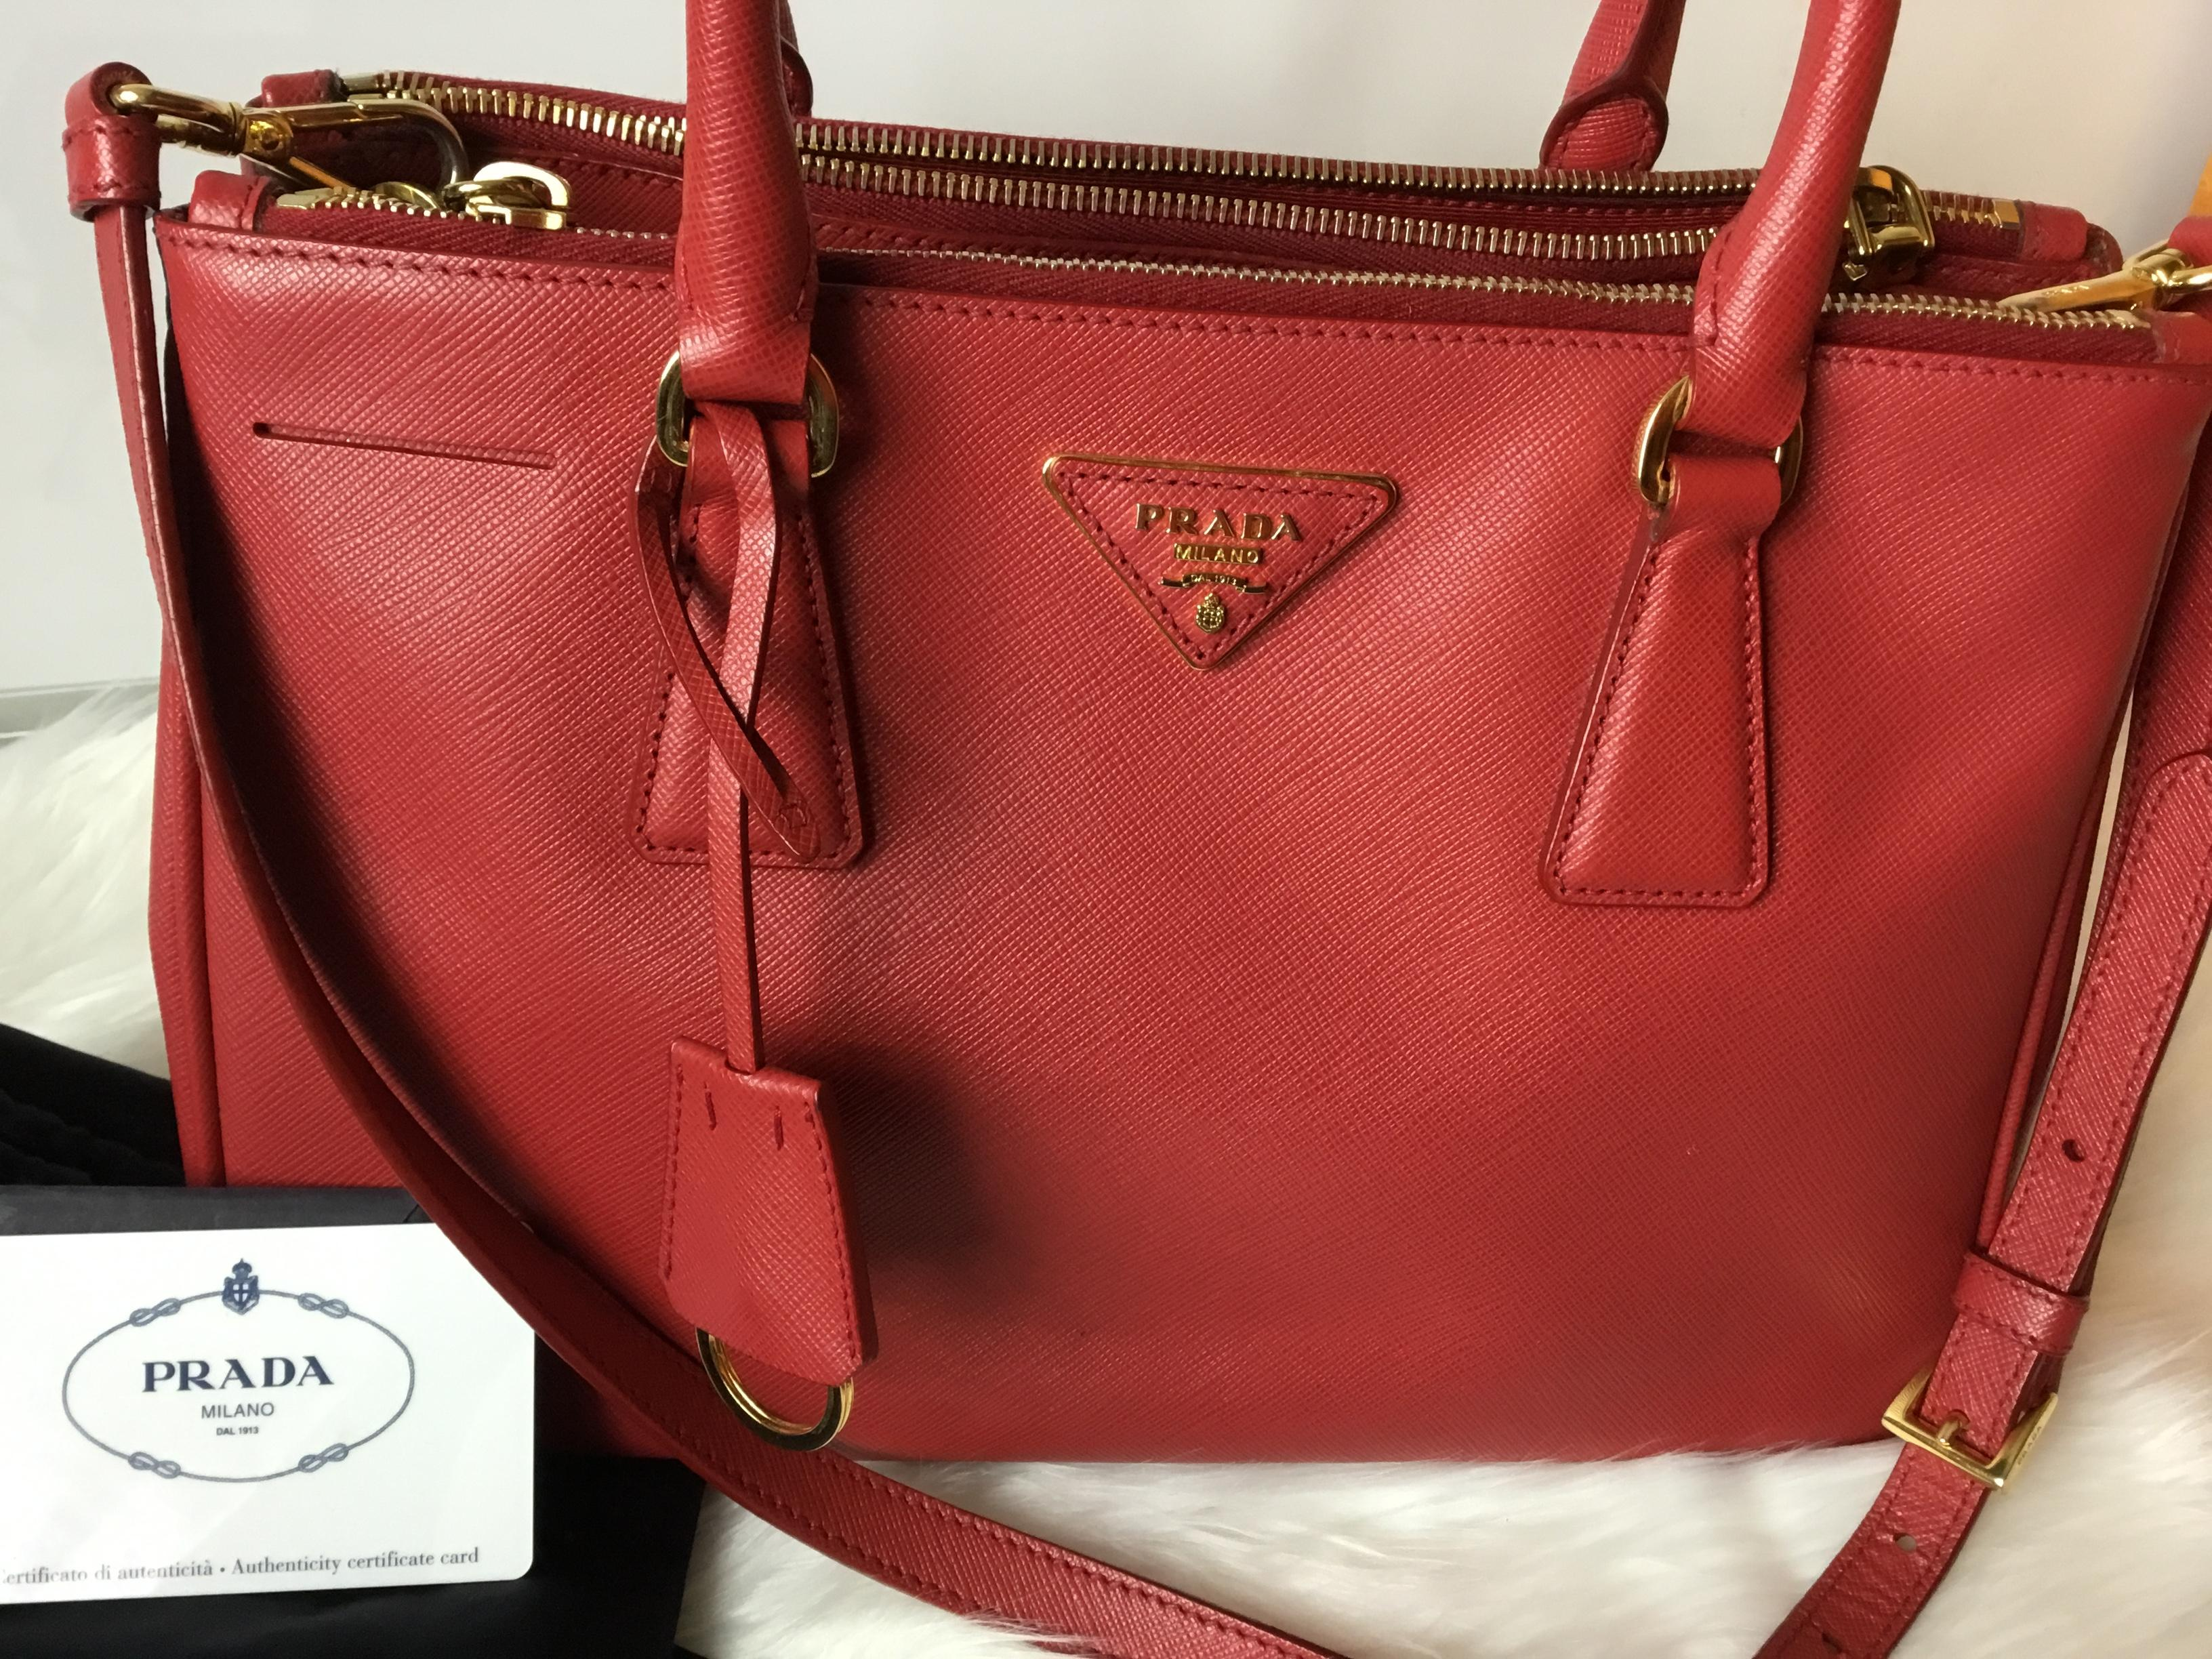 194572818d4c 123456789101112 923f2 a4673; purchase prada double galleria lux saffiano  zip fuoco leather tote tradesy 71f07 253f7